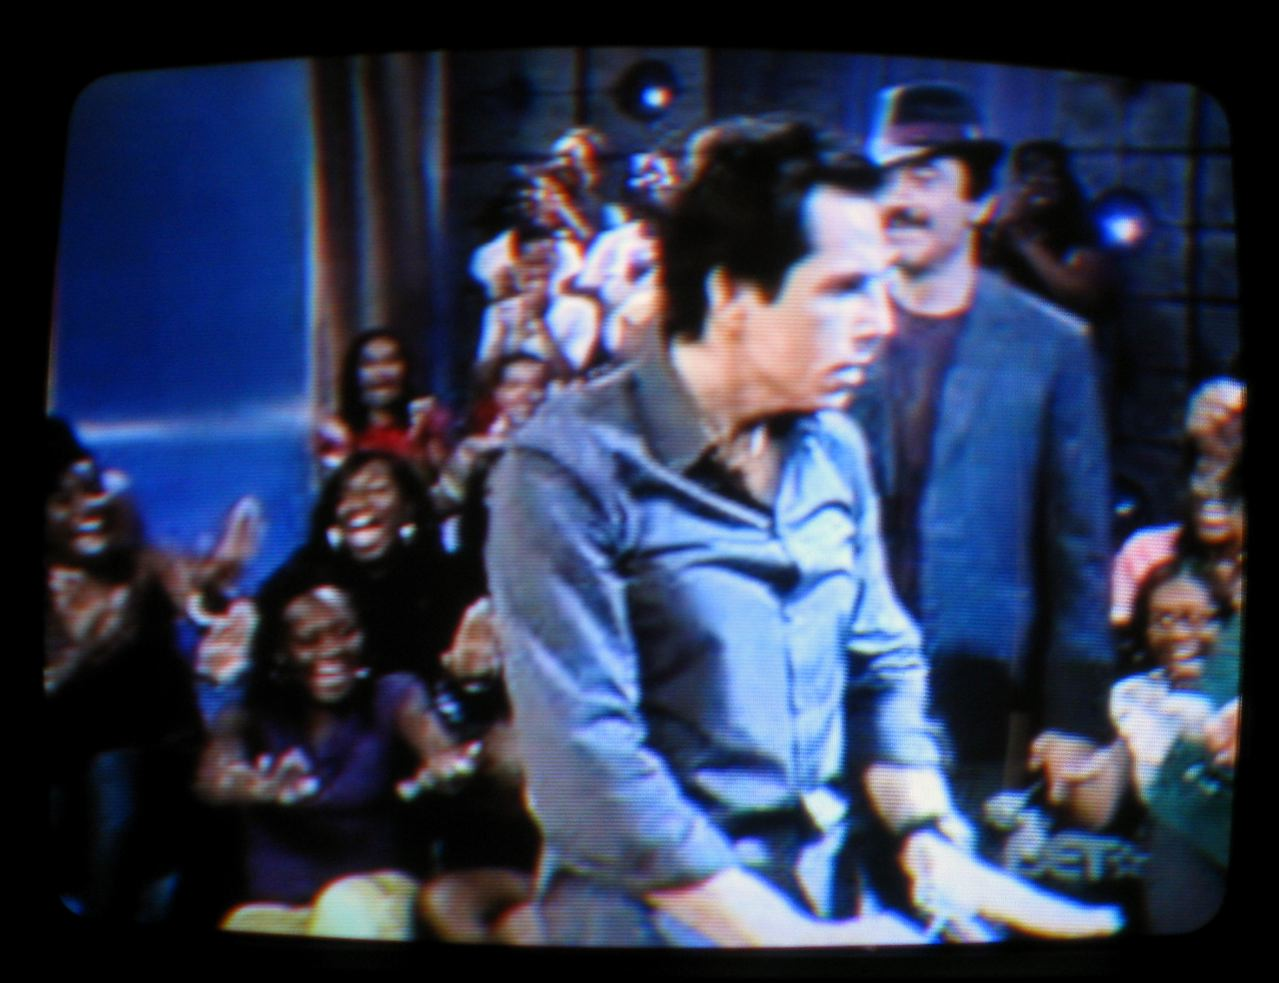 Downey mimicking Stiller on 106th and Park